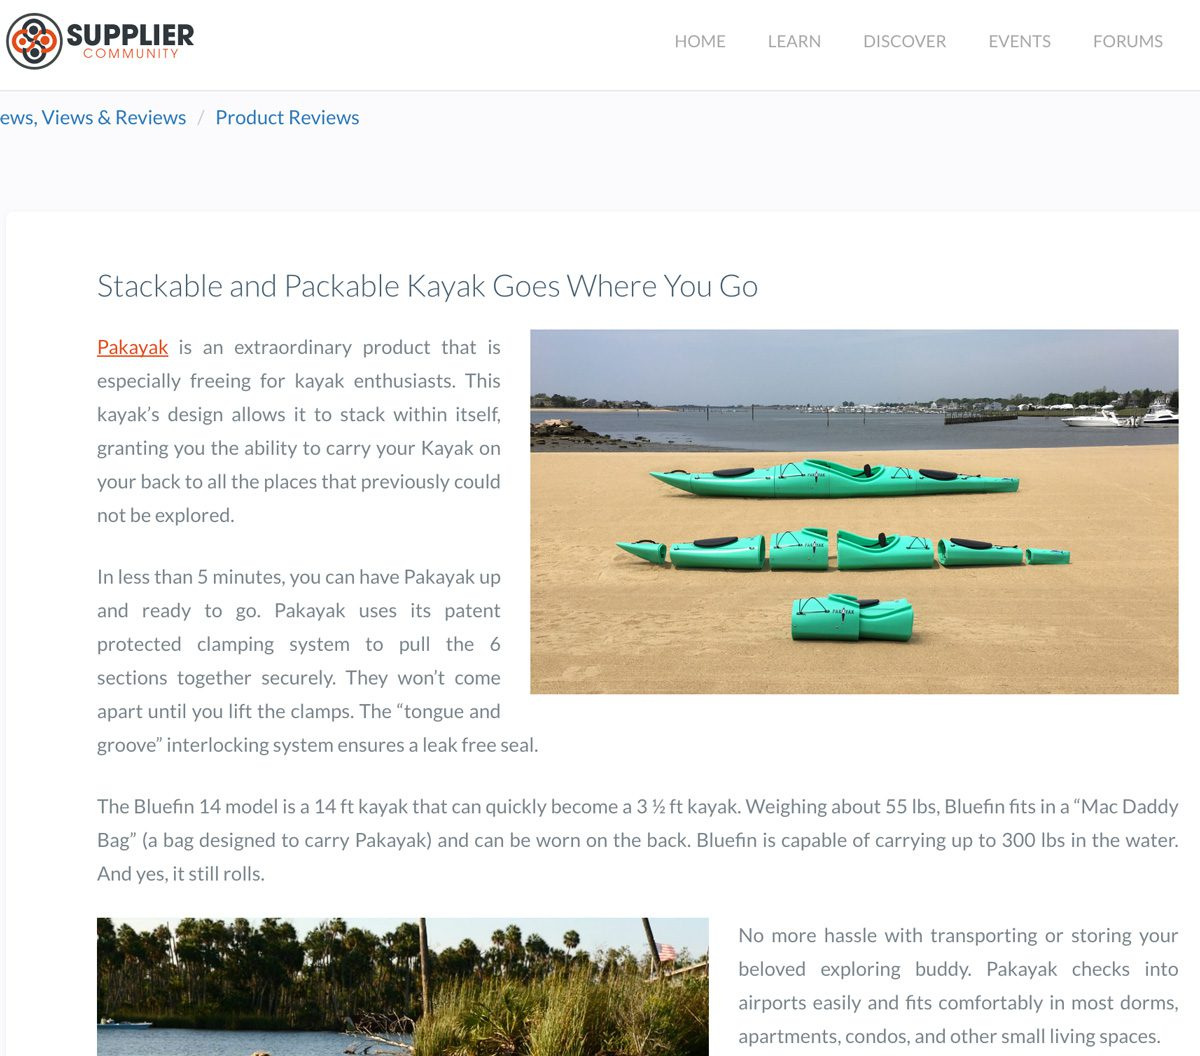 Supplier Community: Stackable and Packable Kayak Goes Where You Go